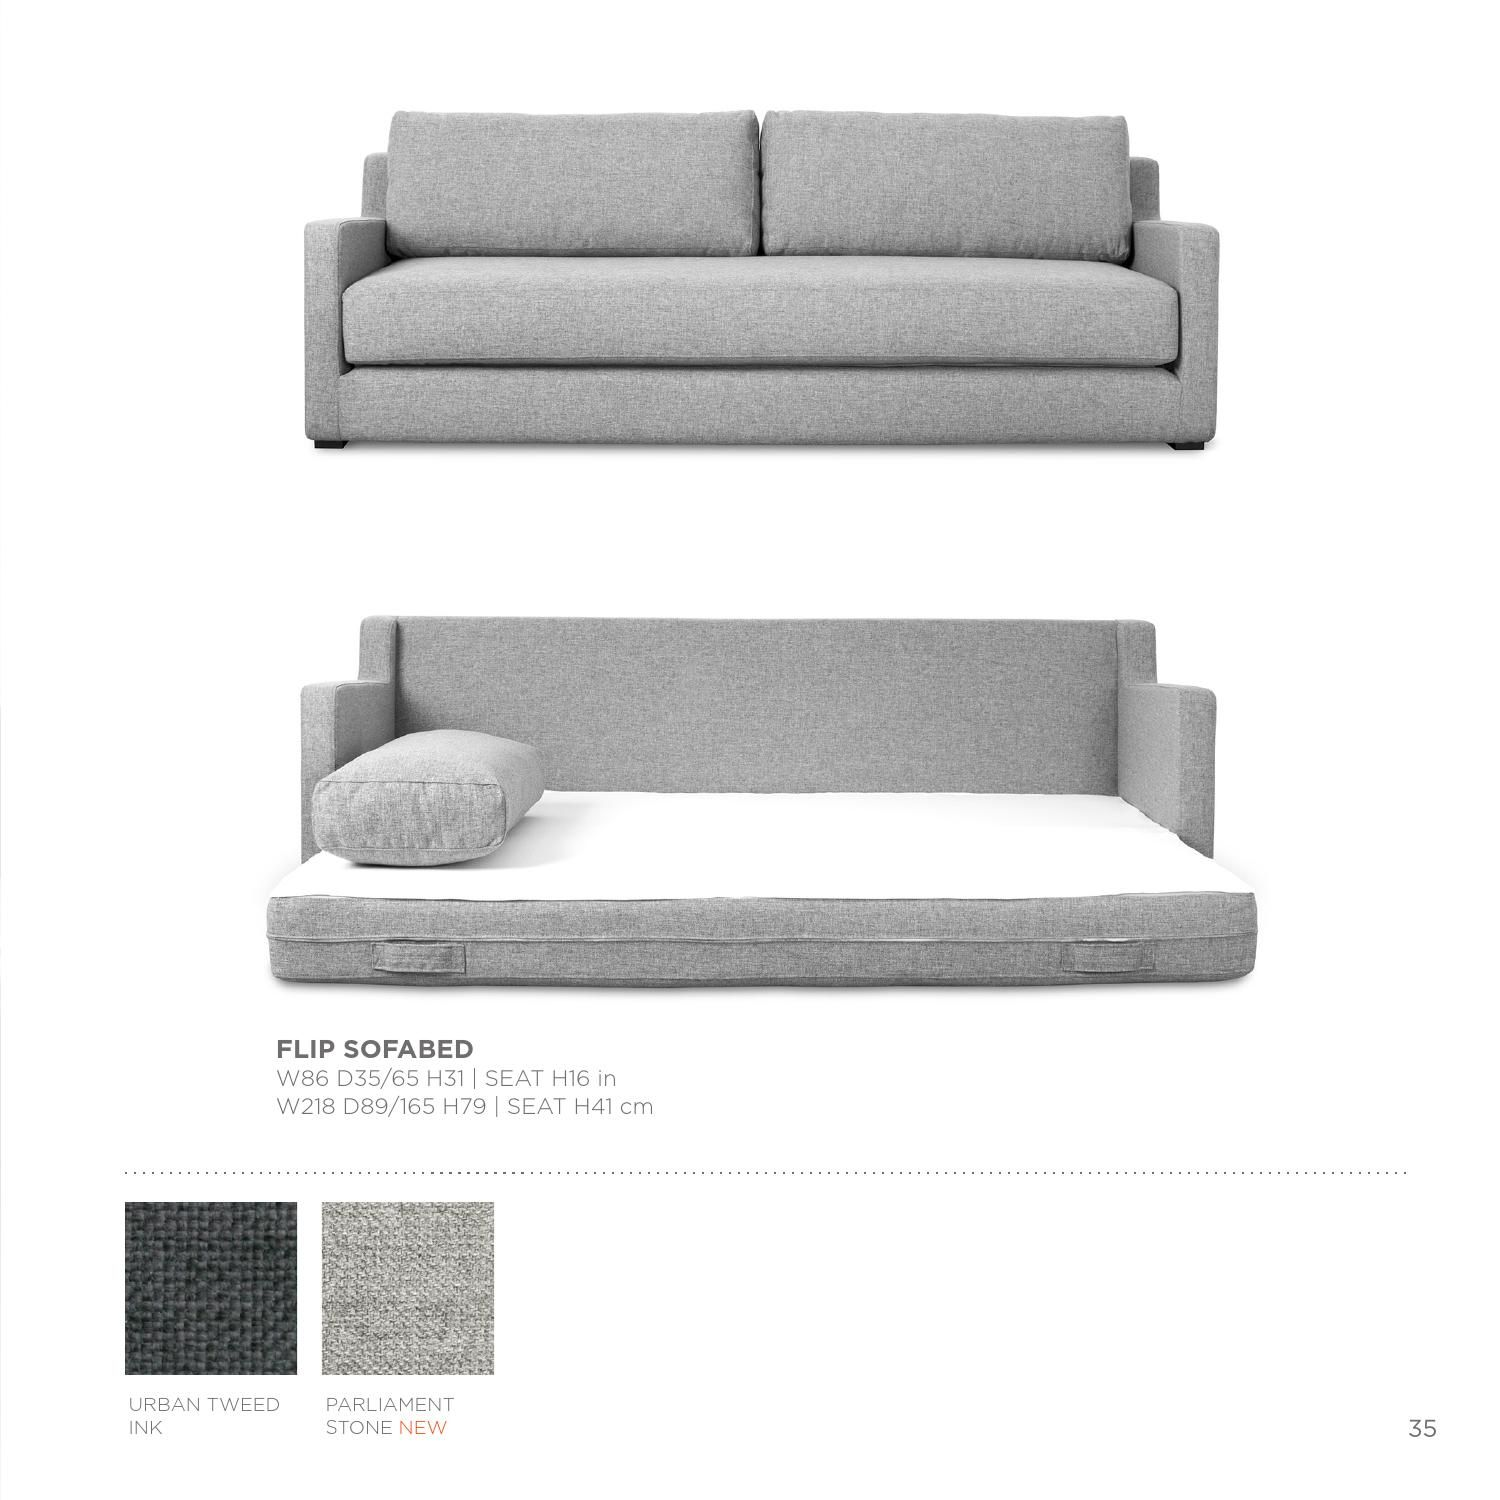 Gus Modern Spring 2015 Collection Modern Furniture Made Simple Pull Out Sofa Bed Single Sofa Bed Sofa Bed With Storage